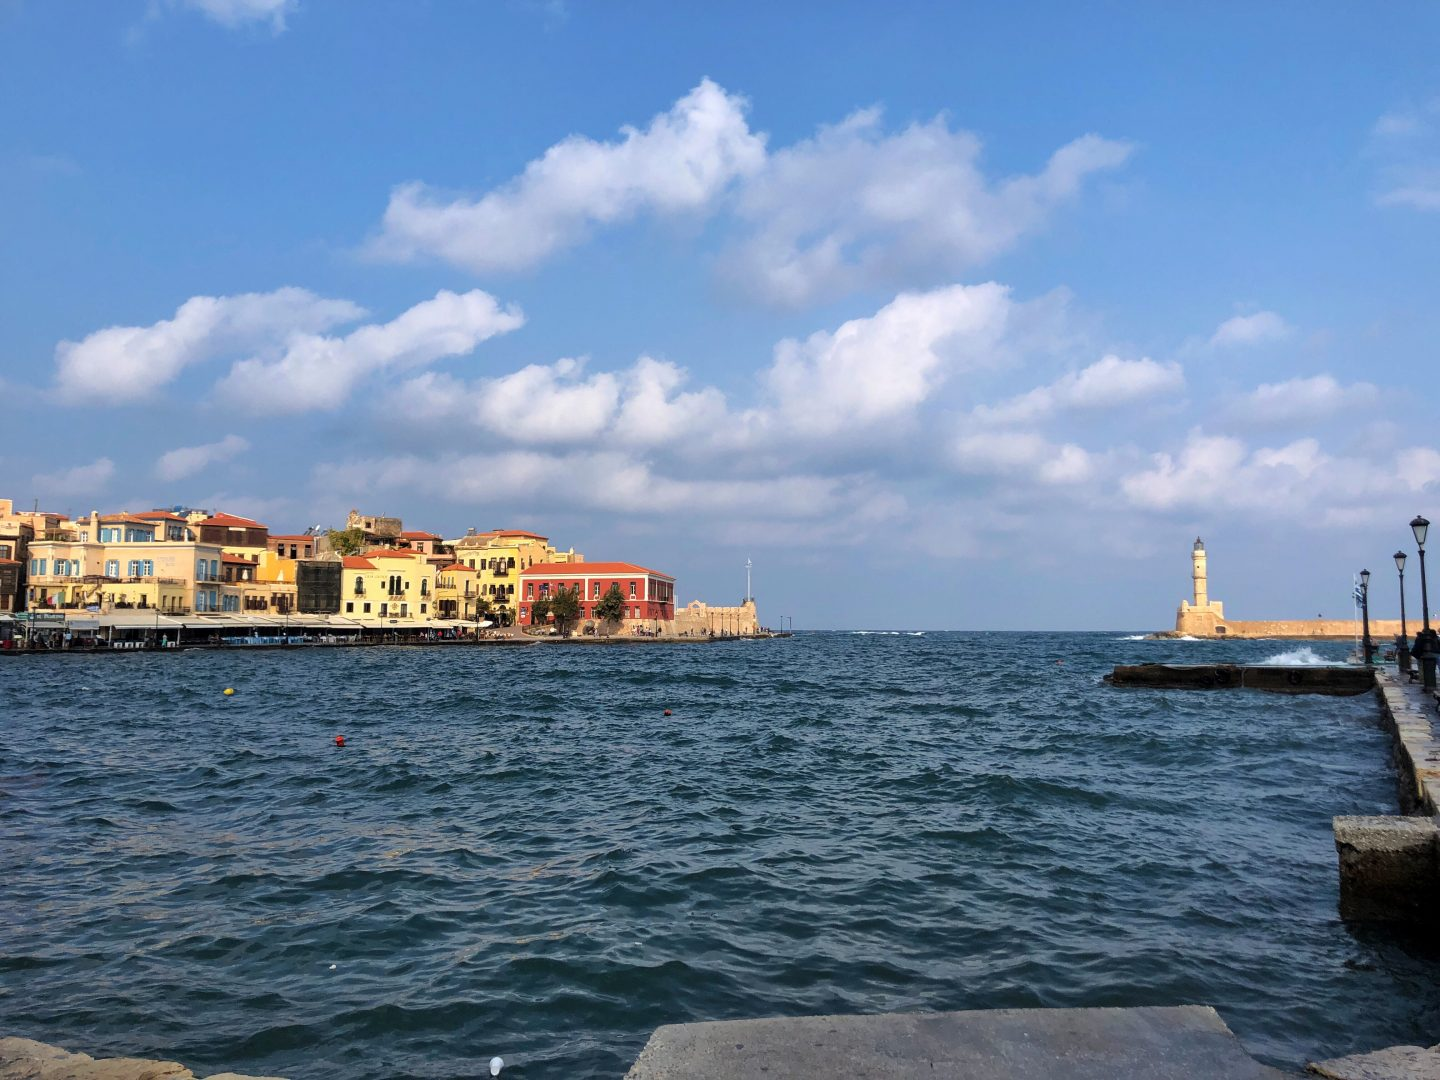 The view from the harbour at Chania old town, brightly coloured yellow and red houses line the harbour edge.